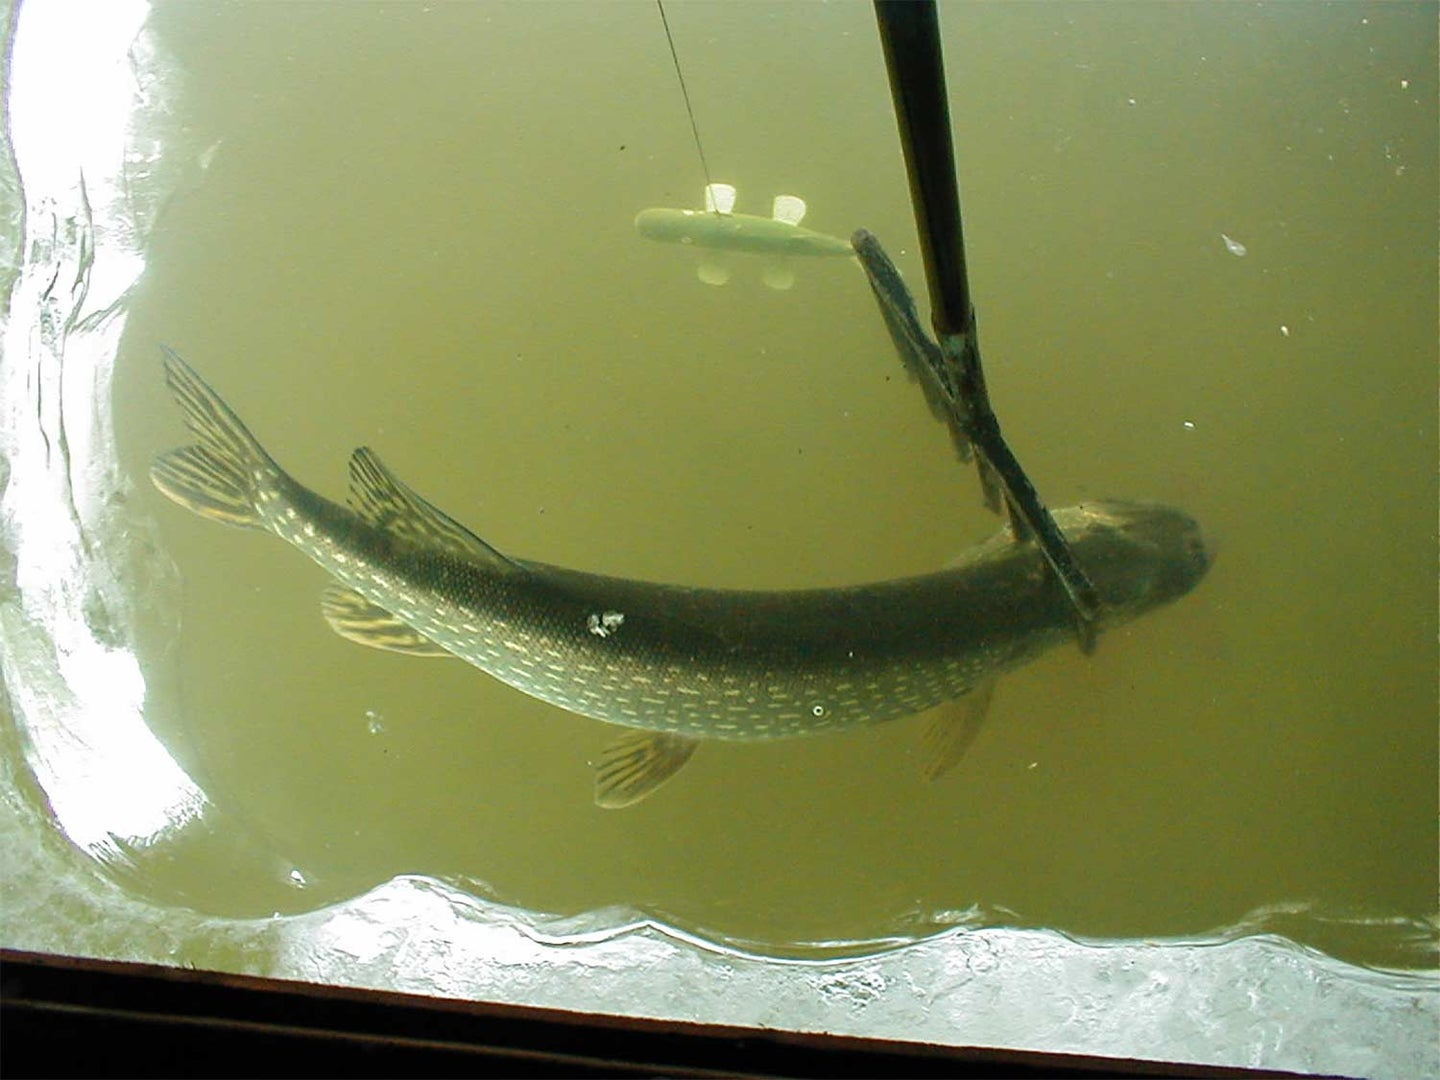 A northern pike about to be speared.